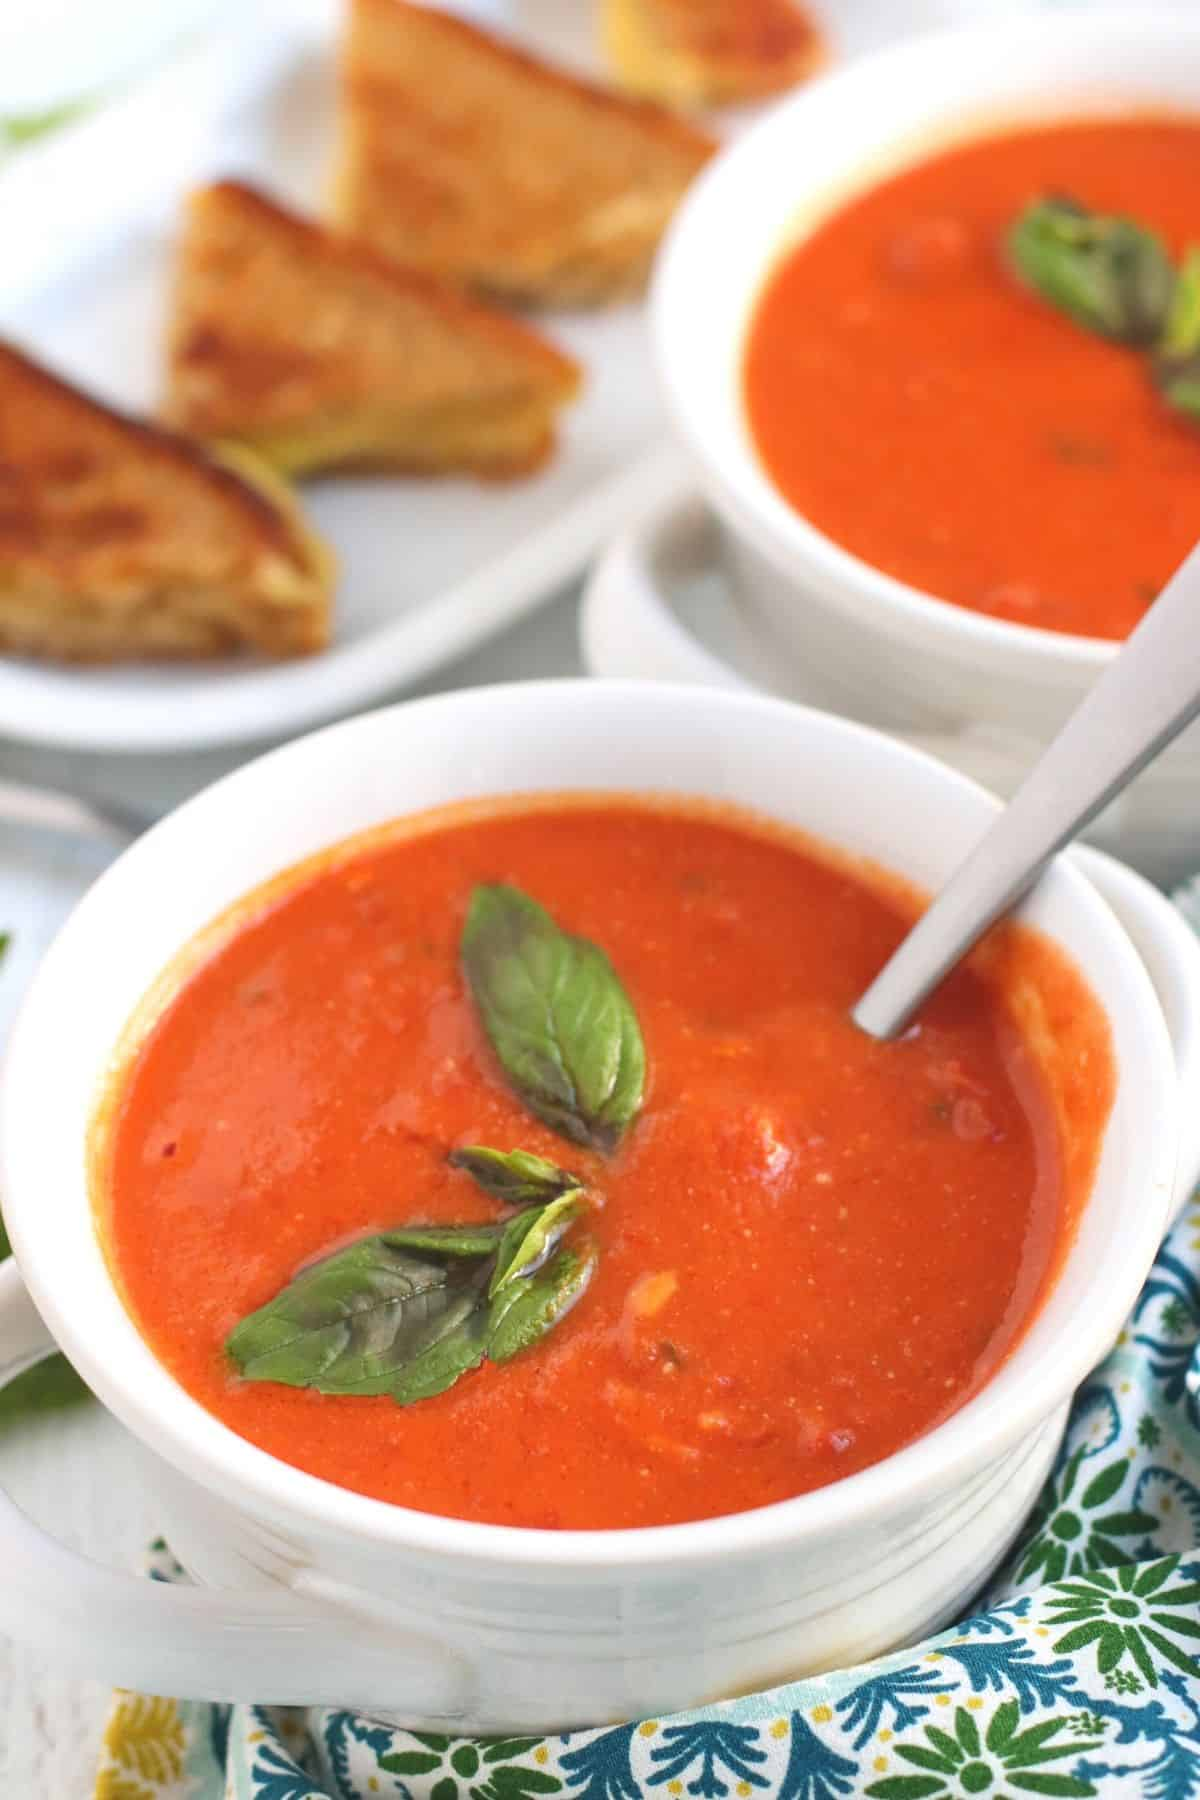 White bowls of creamy vegan tomato soup garnished with fresh basil with plate of grilled cheese sandwiches in the background